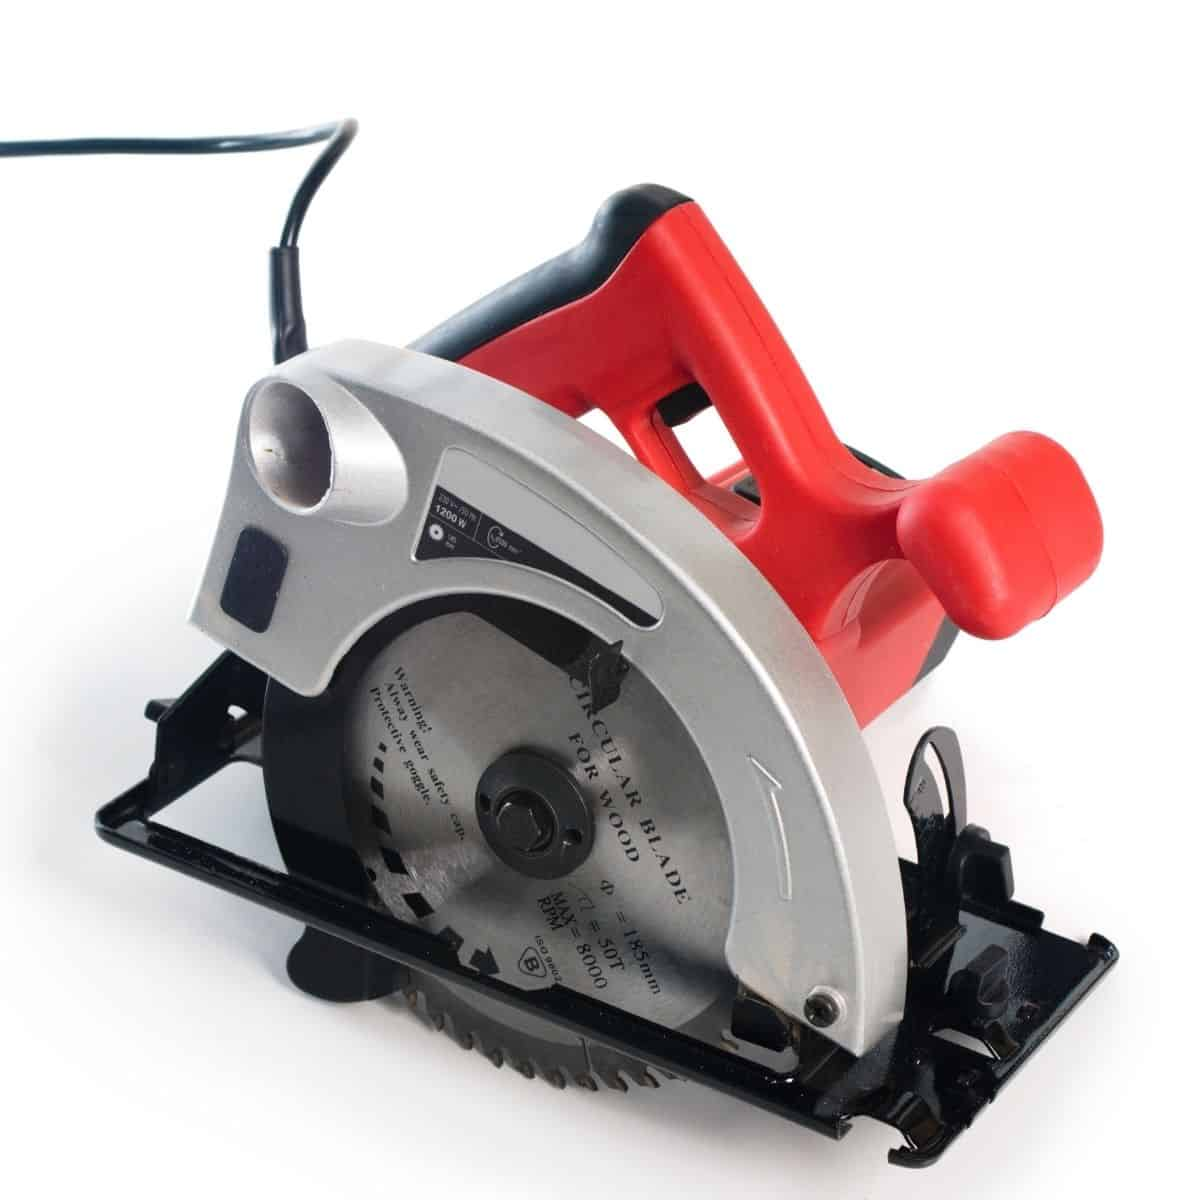 circular saw with red handle